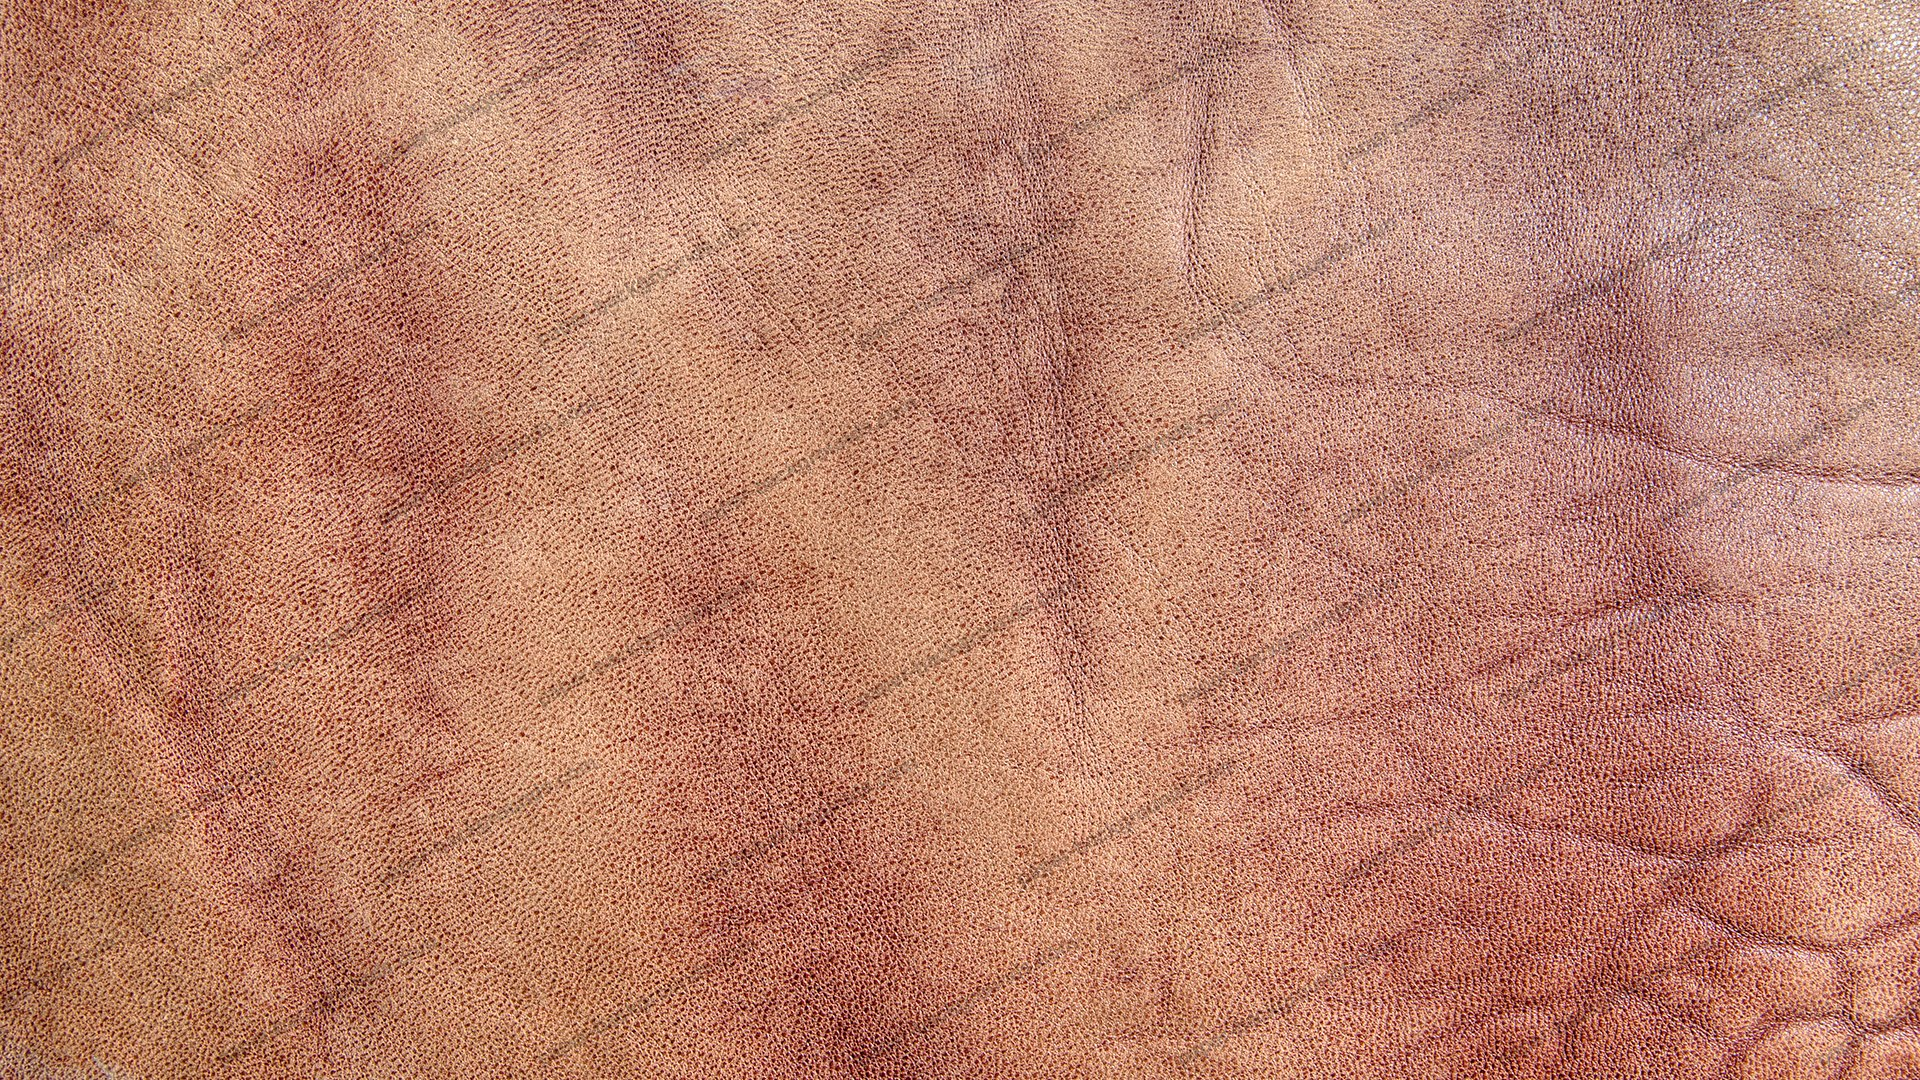 Light Brown Vintage Leather Texture HD 1920 x 1080p